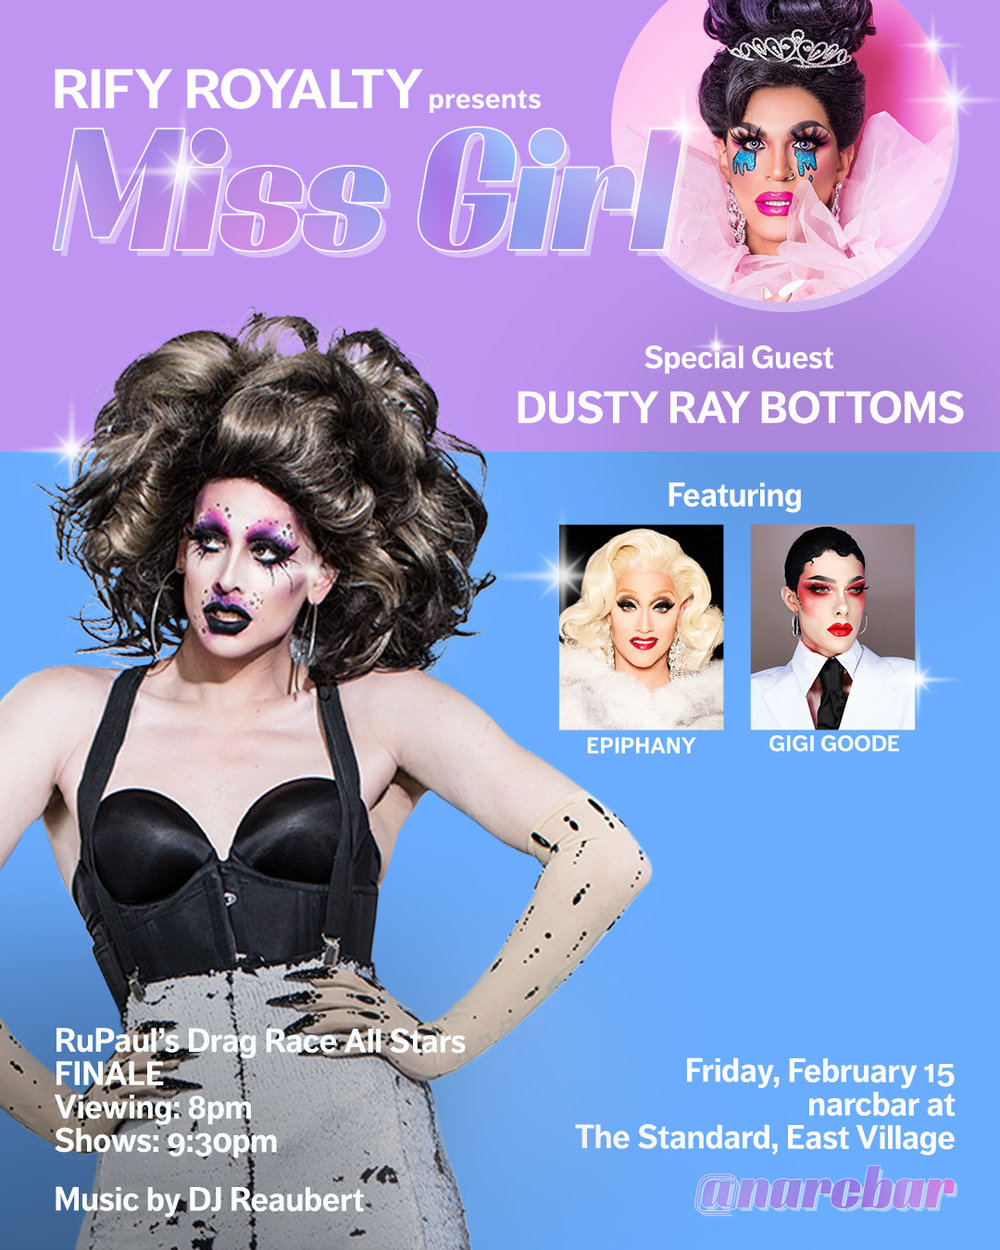 miss girl - rify royalty presents miss girl - rupaul's drag race all stars viewing party!friday, february 15special guestdusty ray bottomsfrom rupaul's drag race season 10featuring epiphany and gigi goodeDJ reaubert8pm episode viewing9:30pm drag shows